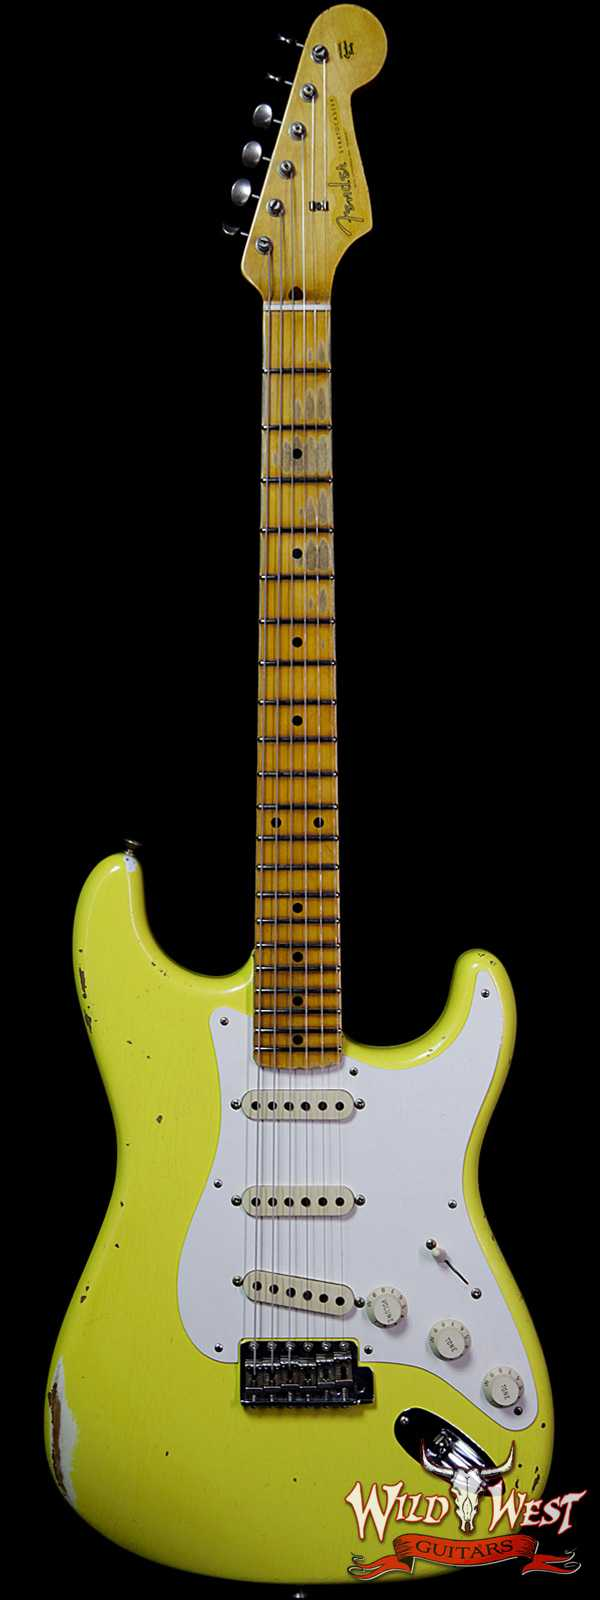 Fender Custom Shop 1957 Stratocaster Relic Maple Neck Graffiti Yellow